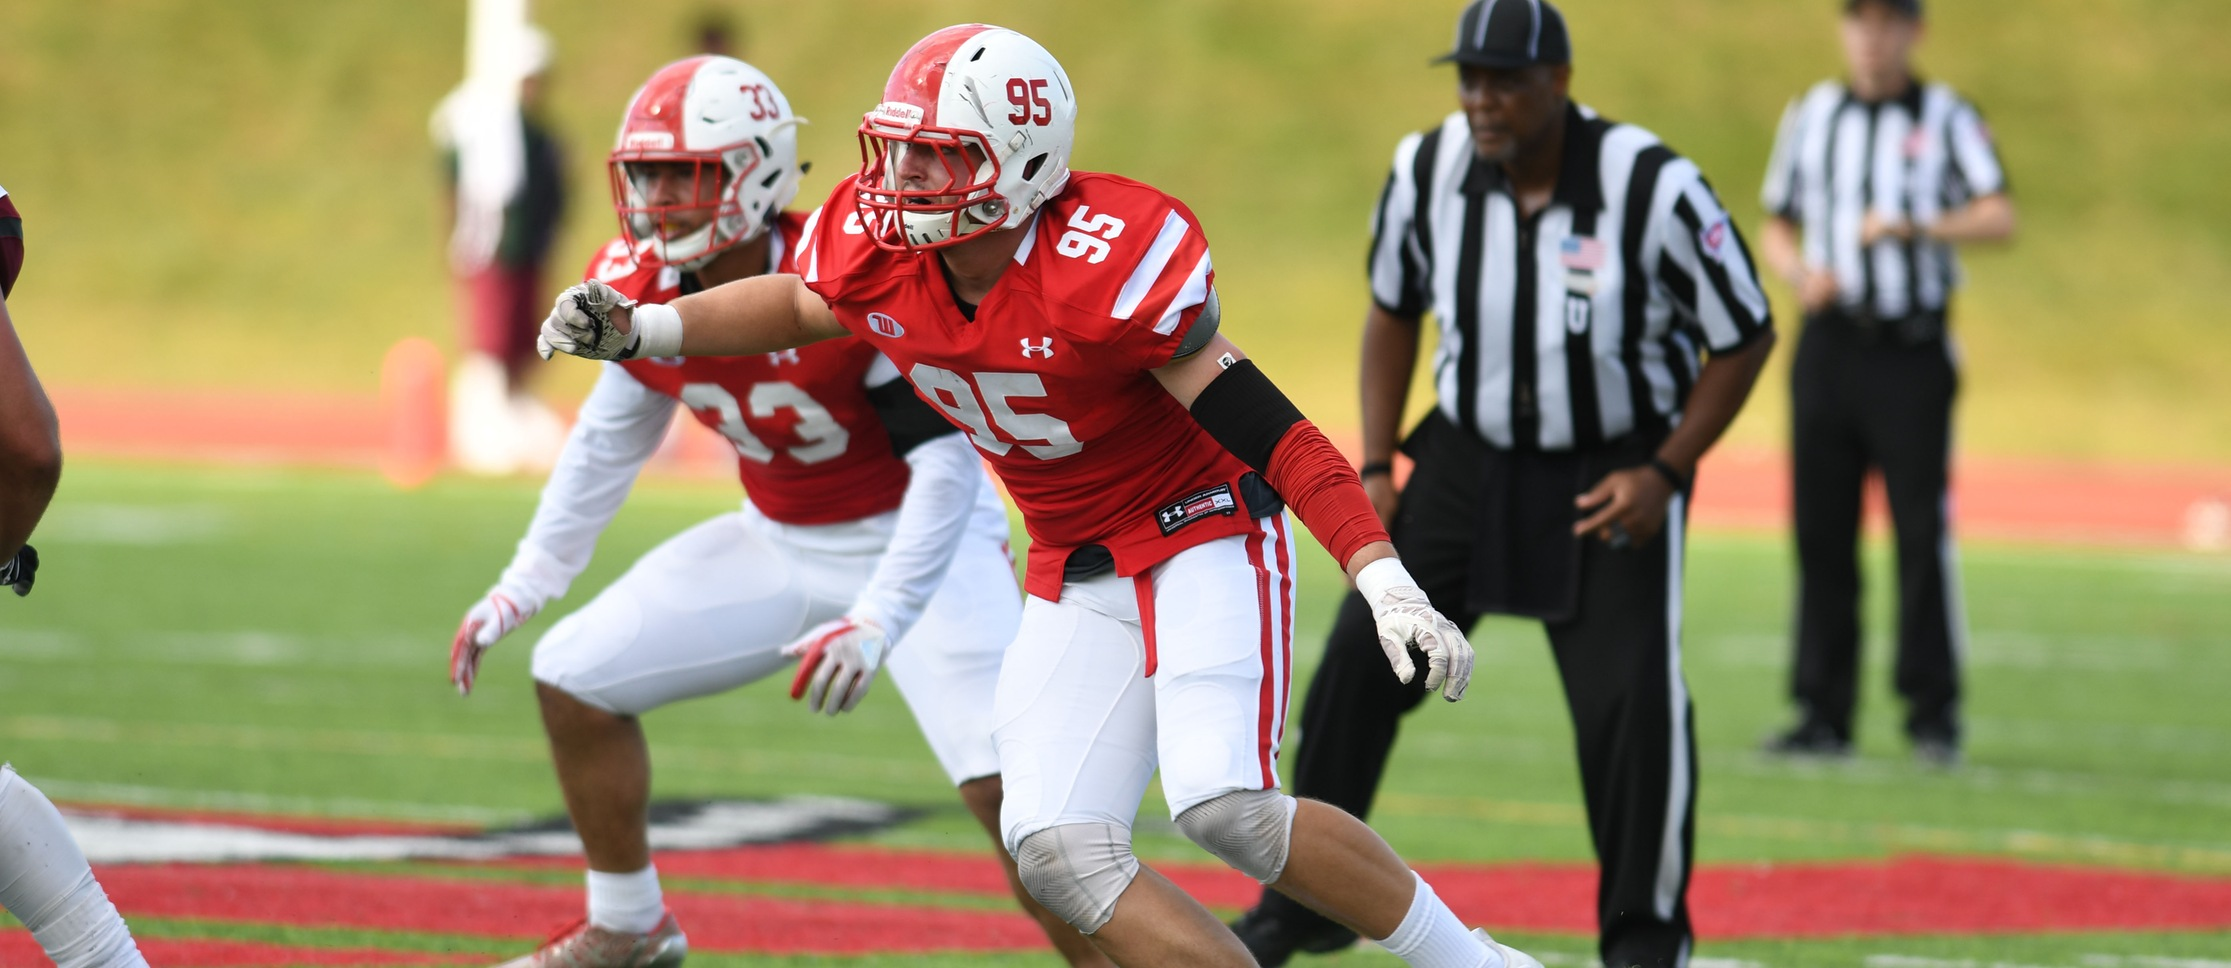 #14 Wittenberg Holds Kenyon to Negative Rushing Yards in 48-11 Victory